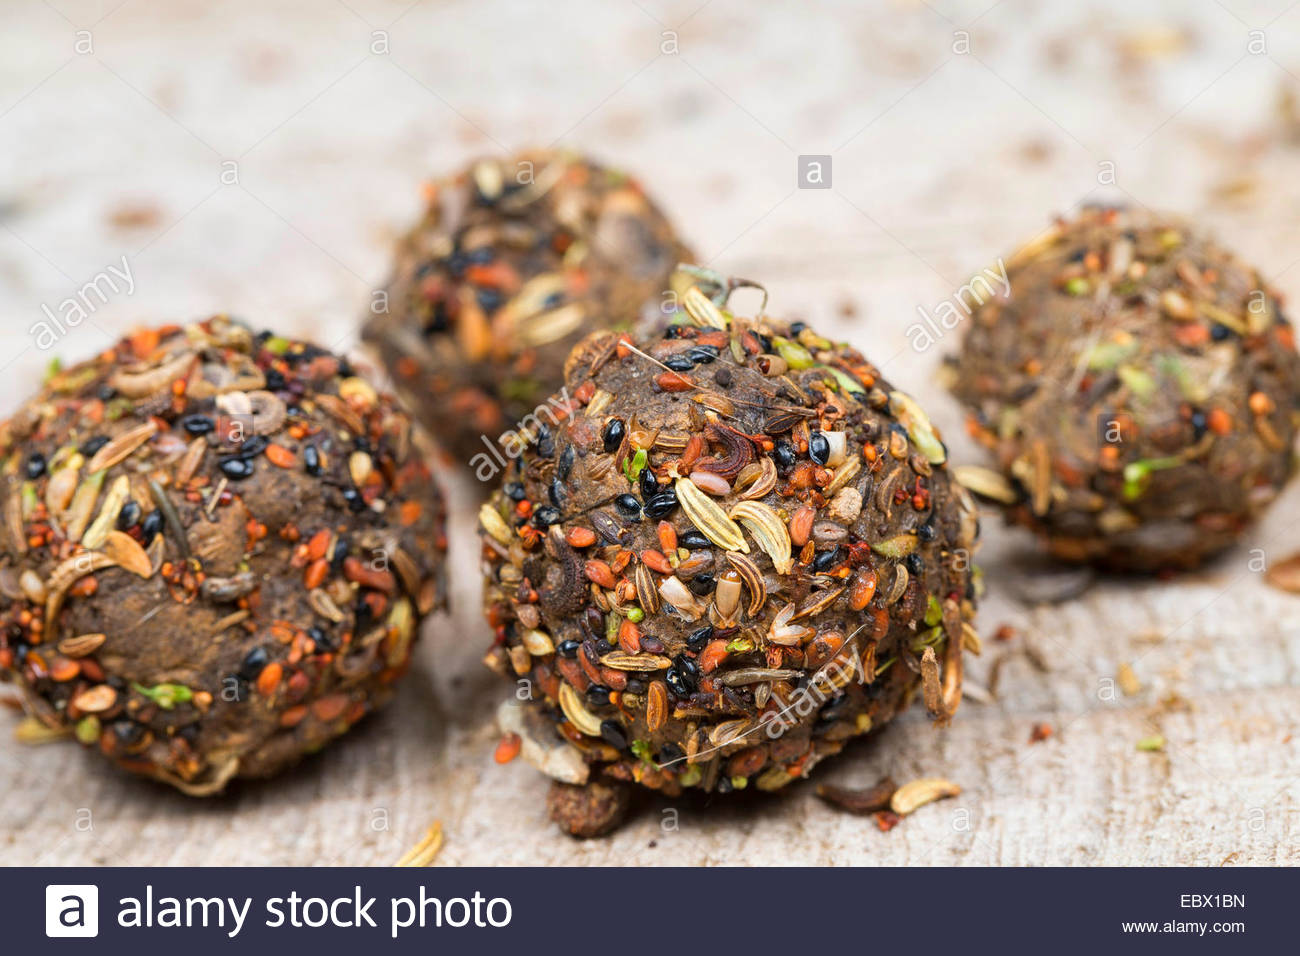 seed bombs with different seeds and fruits and soil, Germany - Stock Image